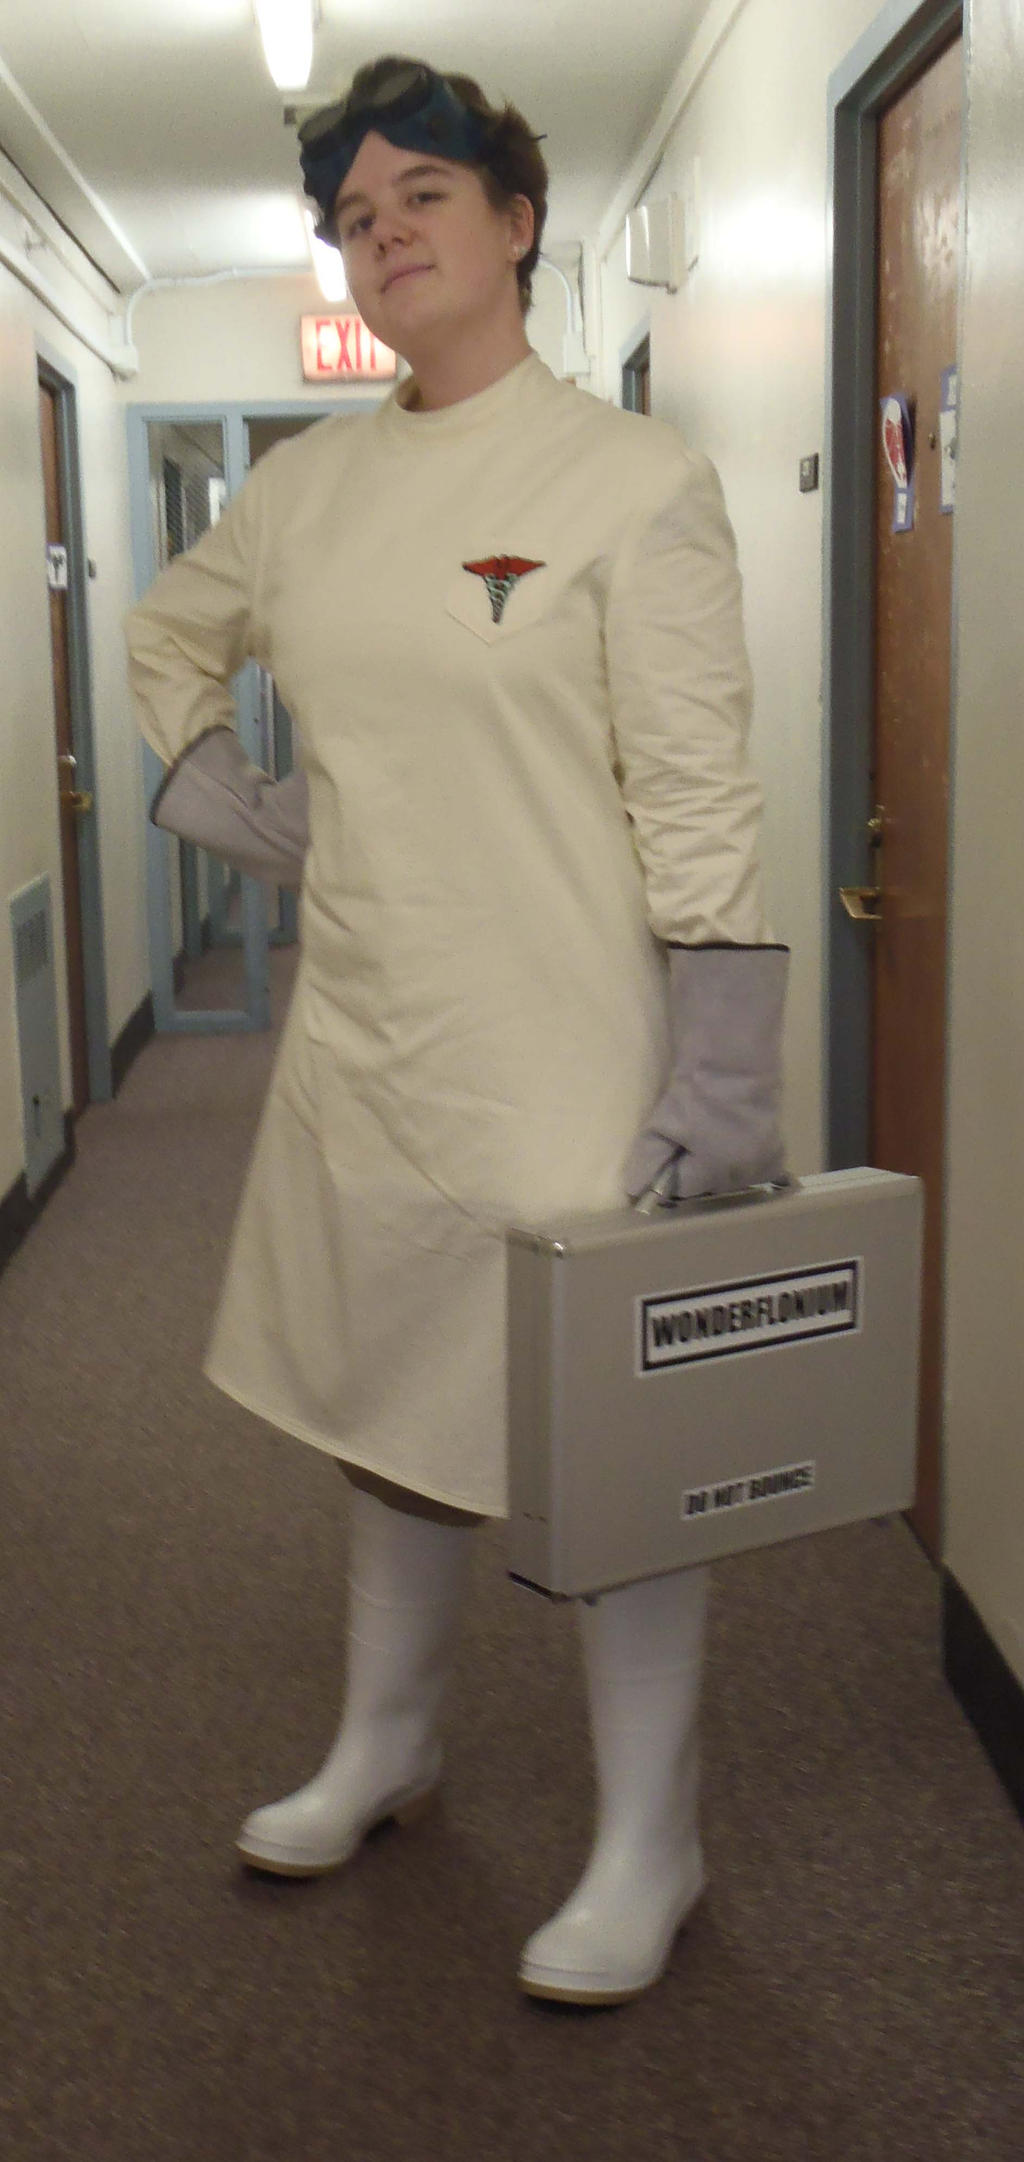 dr horrible halloween costume by mortykins - Dr Horrible Halloween Costume